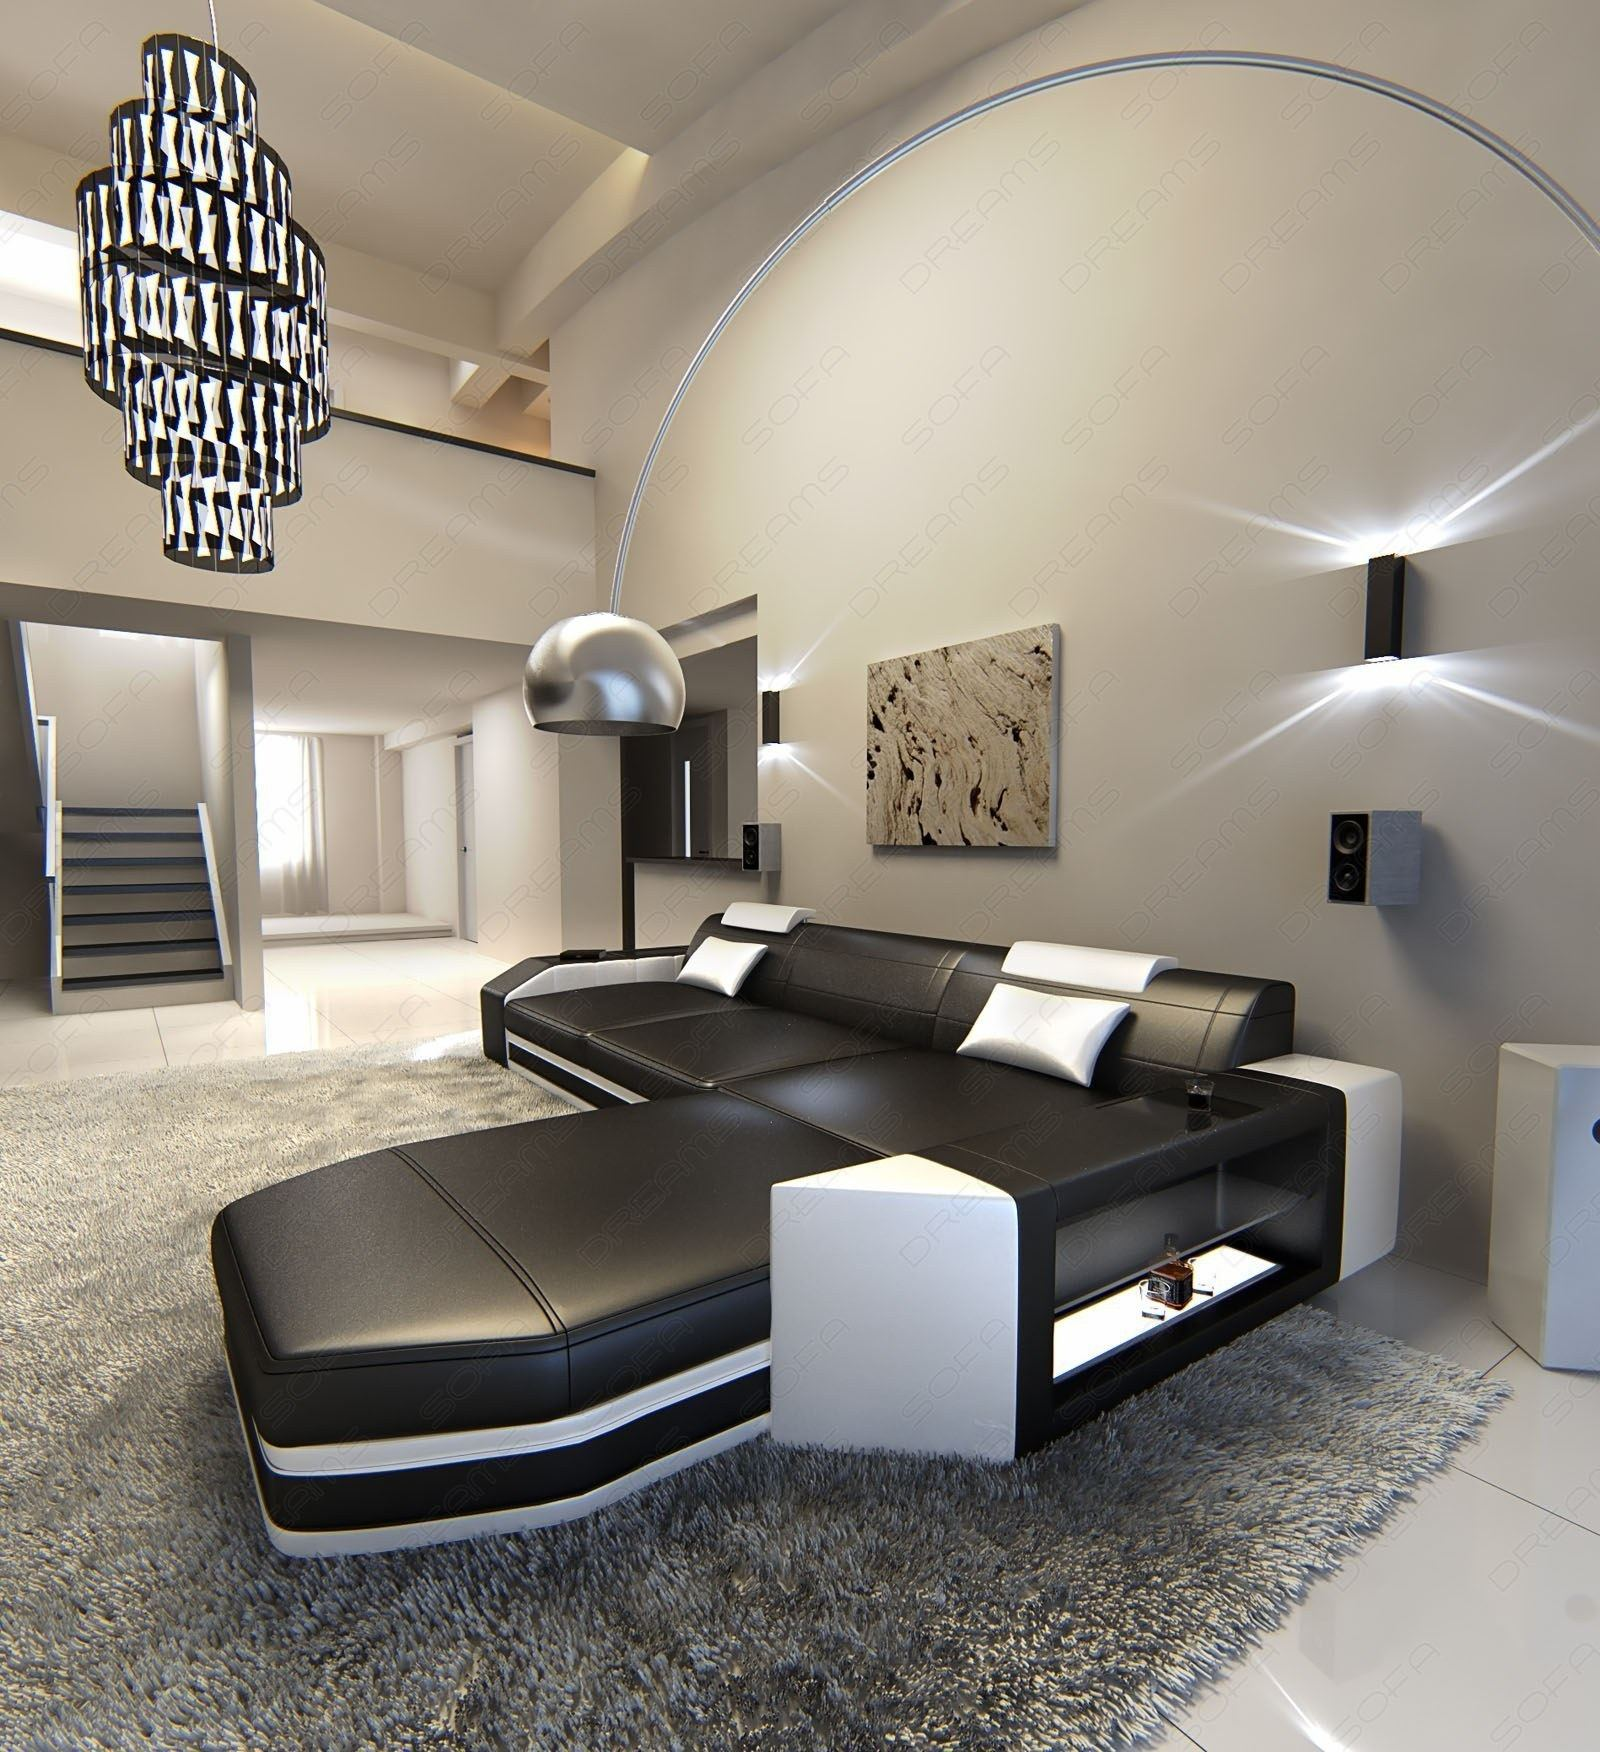 ledercouch design wohnlandschaft prato l form mit led beleuchtung ebay. Black Bedroom Furniture Sets. Home Design Ideas